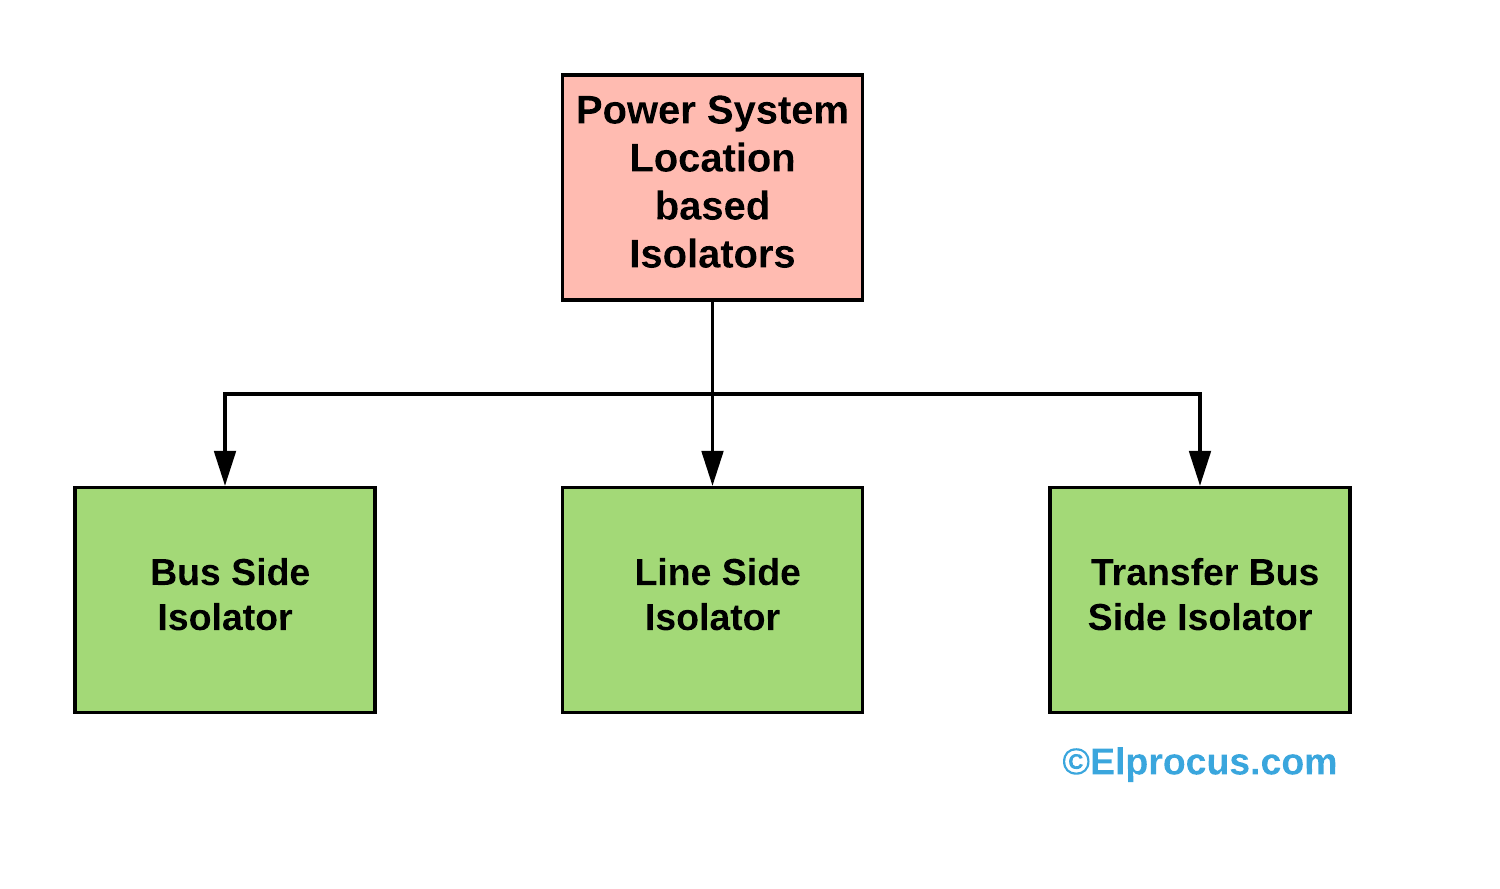 Power System Location based Isolators